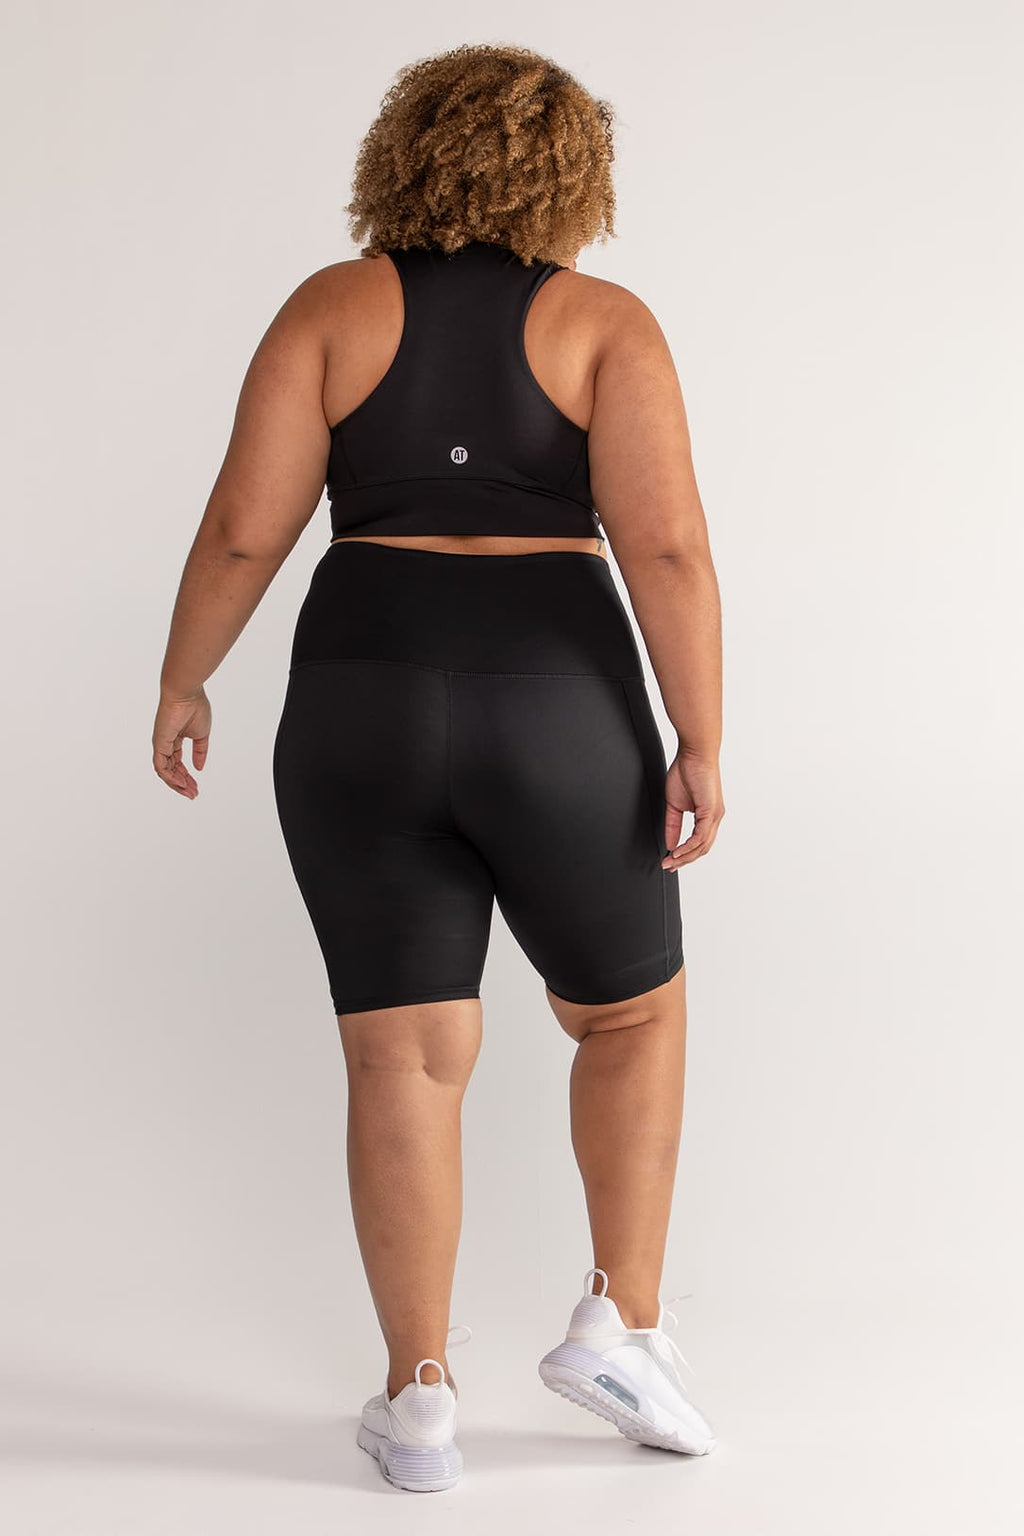 bike-short-compression-tights-black-plussize-back